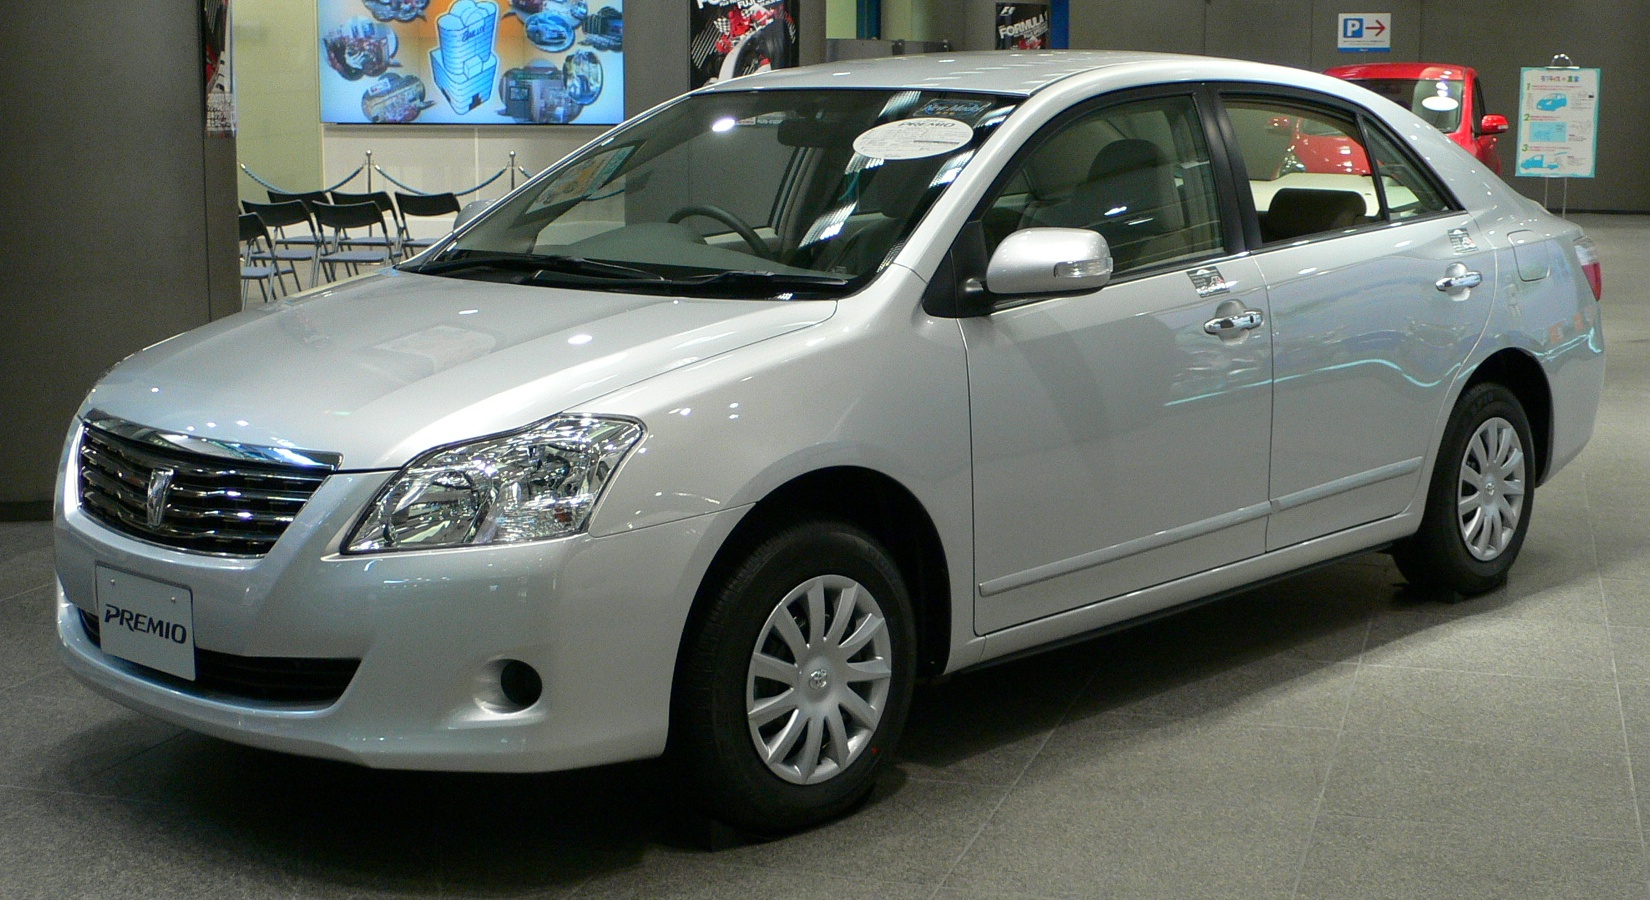 Kluger For Sale >> Toyota Premio photos - PhotoGallery with 4 pics| CarsBase.com